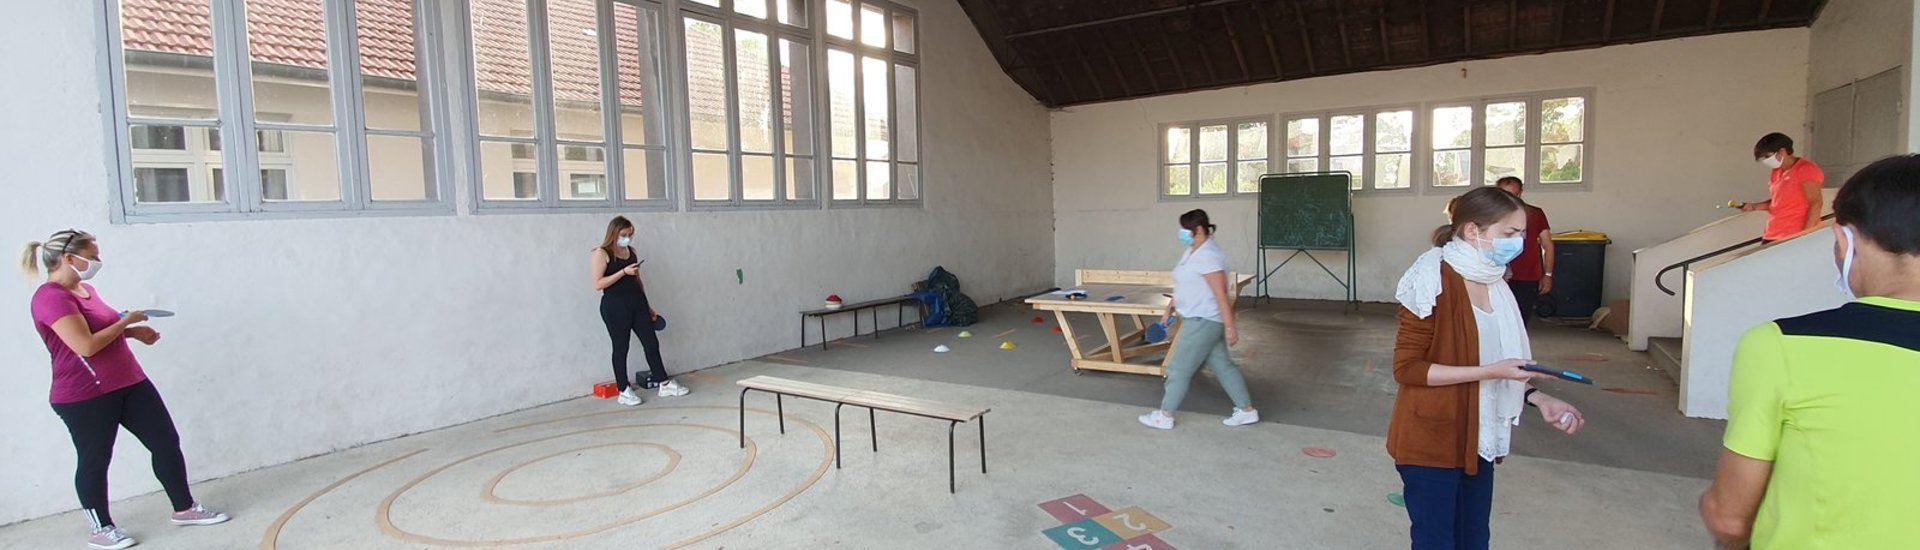 Formation Enseignants Partenariat Tennis de table C3